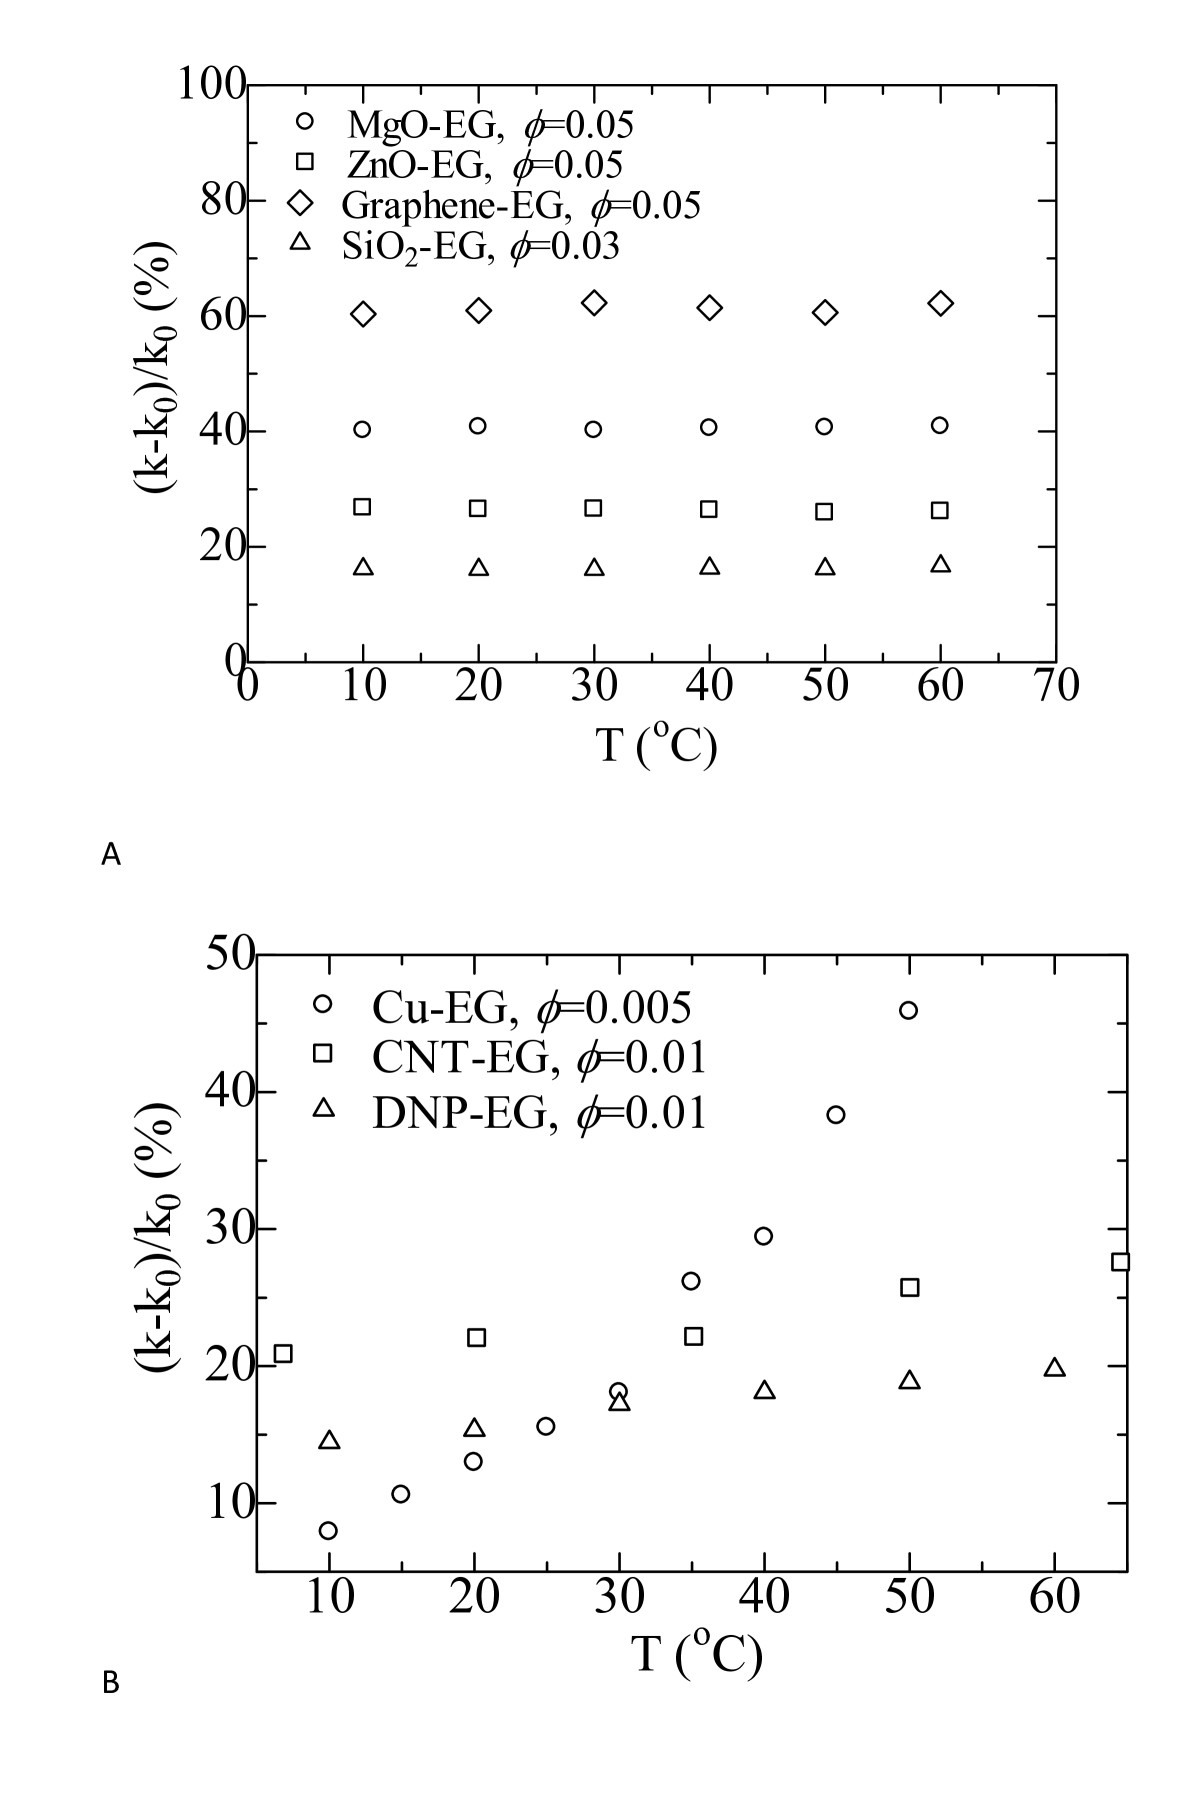 http://static-content.springer.com/image/art%3A10.1186%2F1556-276X-6-124/MediaObjects/11671_2010_Article_57_Fig2_HTML.jpg